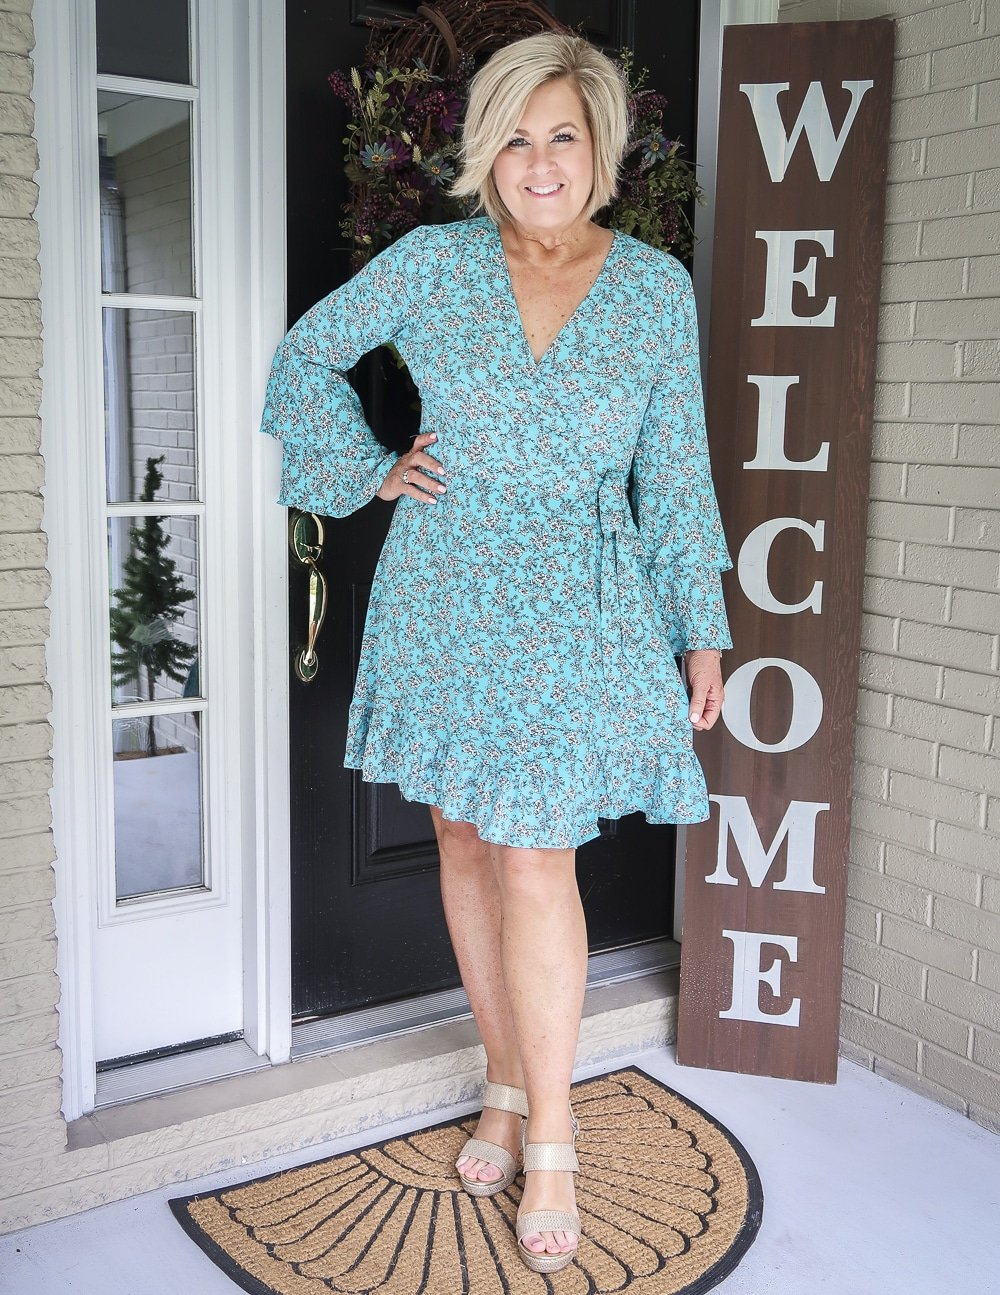 Fashion Blogger 50 Is Not Old is wearing a beautiful summer turquoise wrap dress and gold espadrille shoes from Walmart